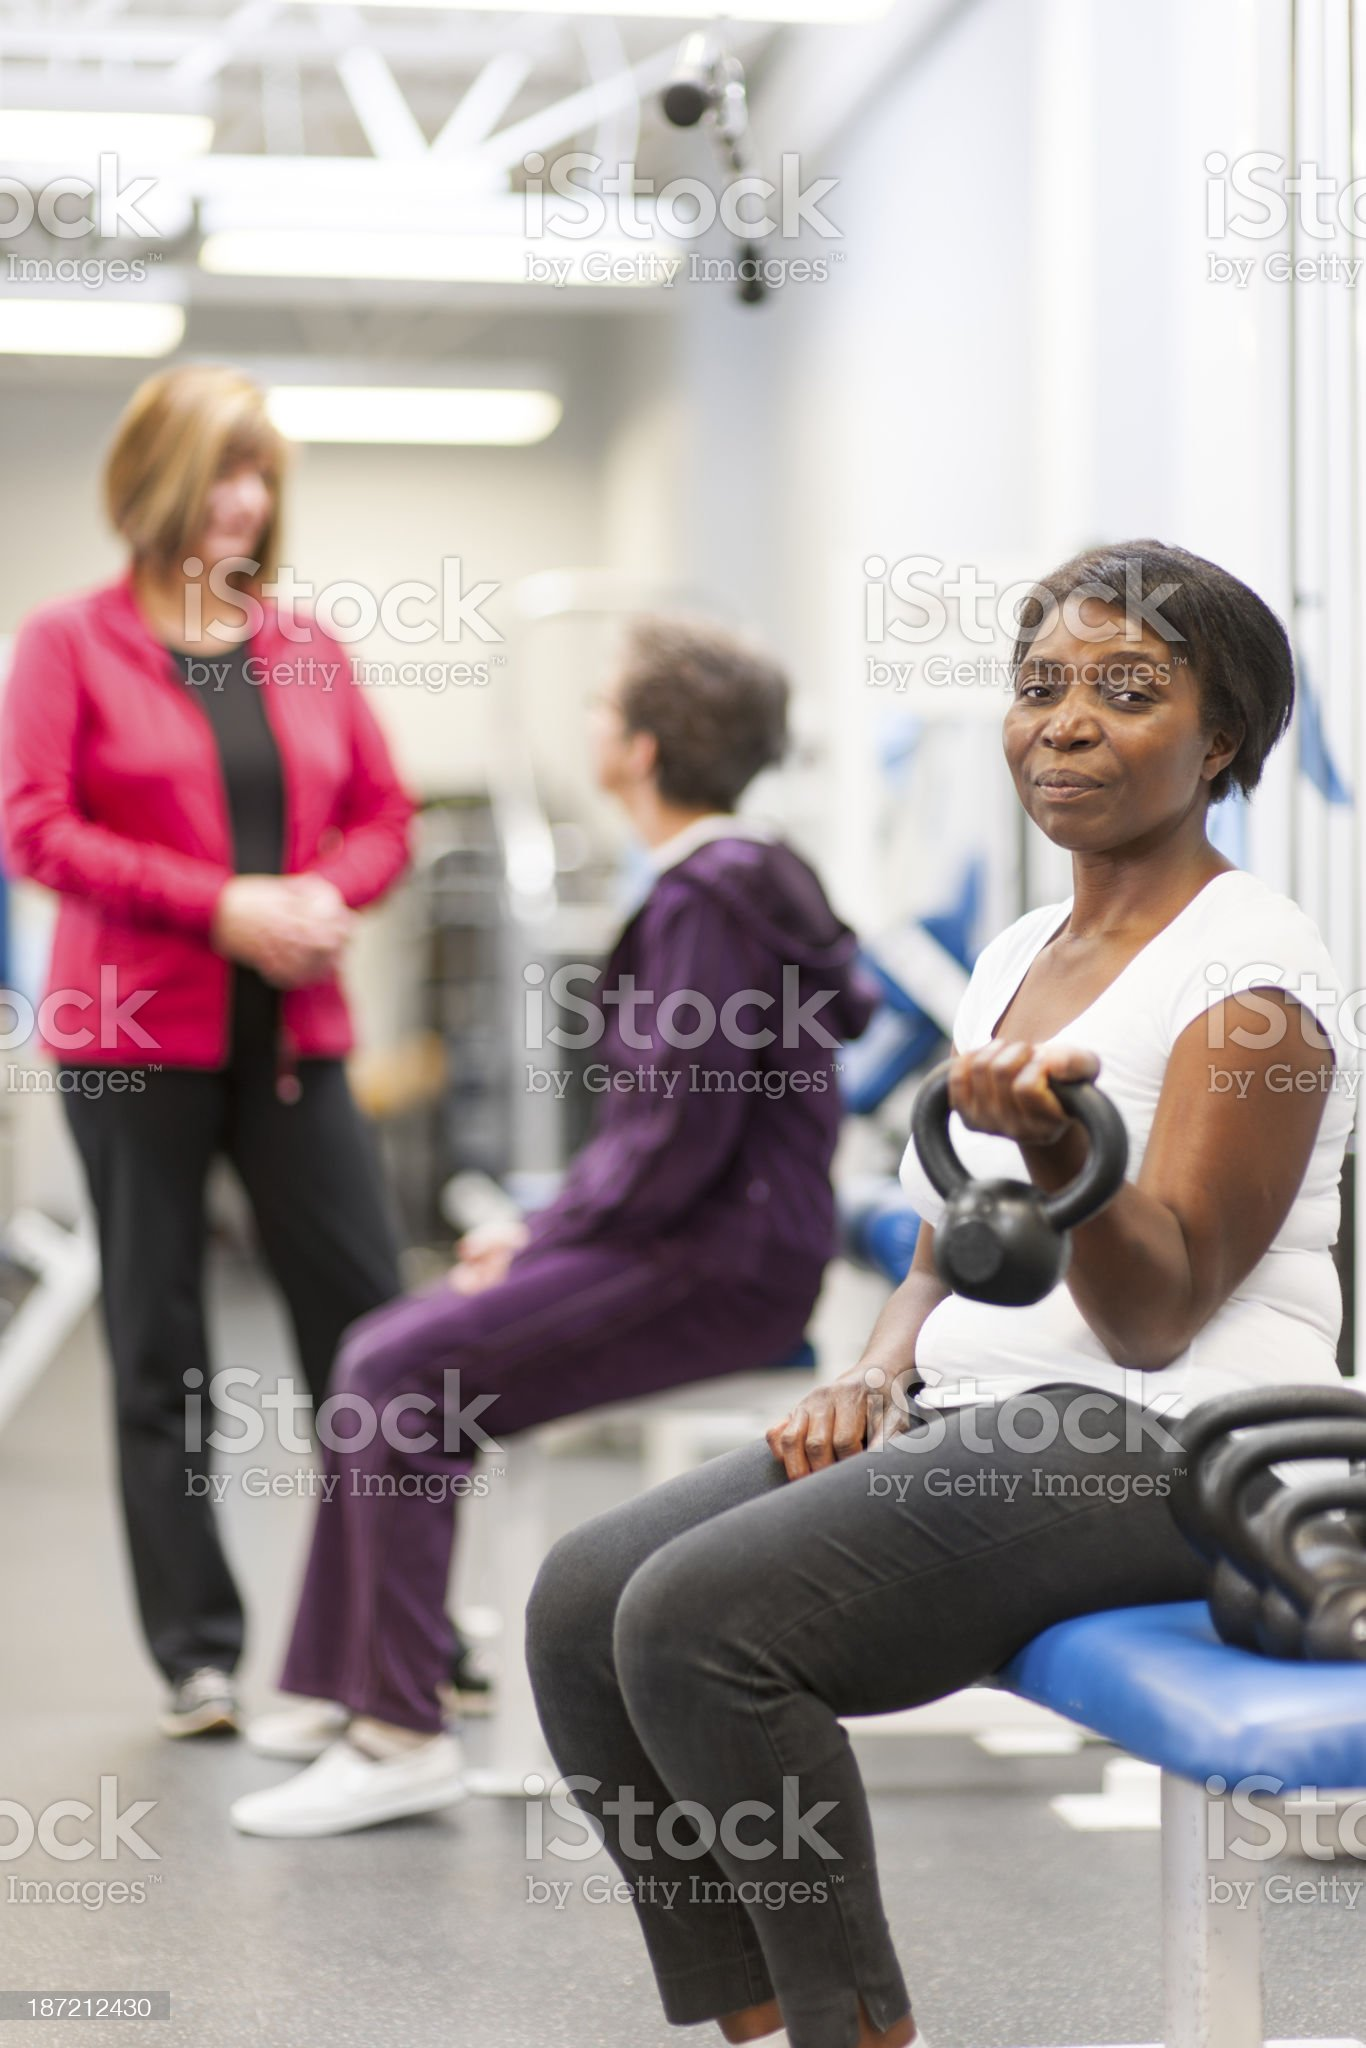 Healthy Active Lifestyle royalty-free stock photo